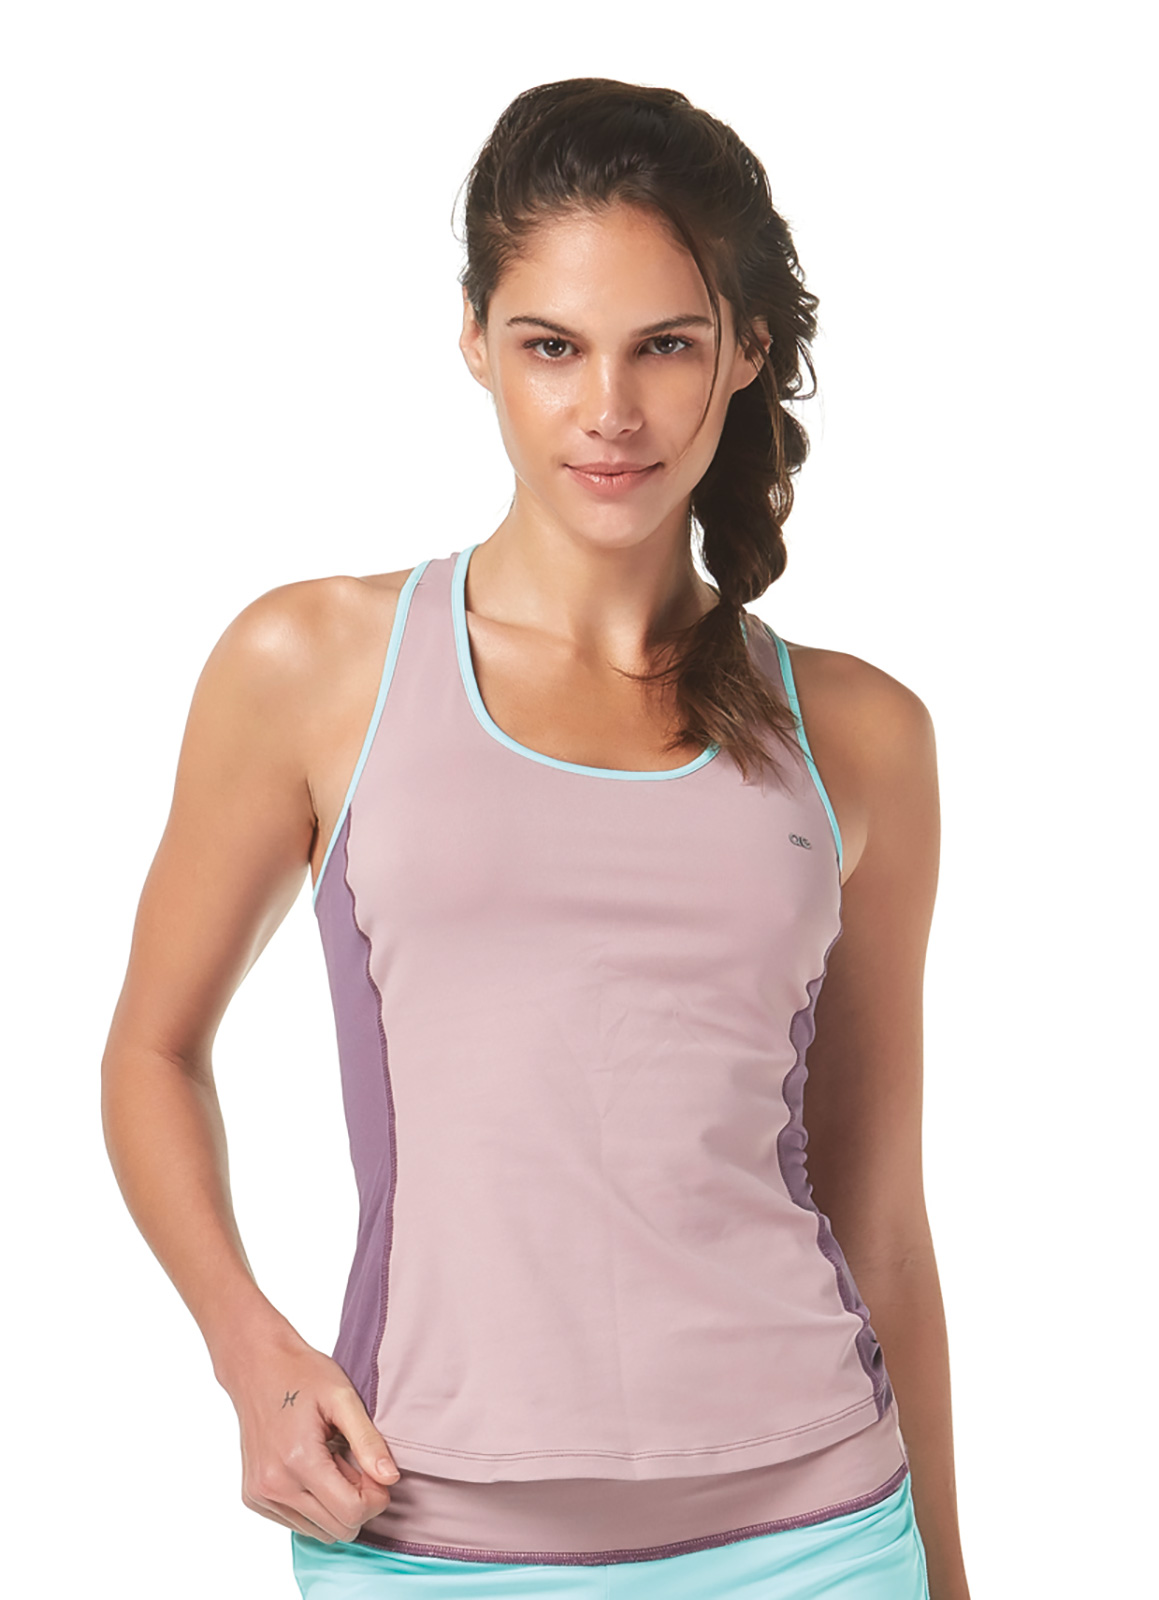 9ed14eeadac55 Fitness top Two-toned Mauve Racer-back Fitness Vest Top - Top Running